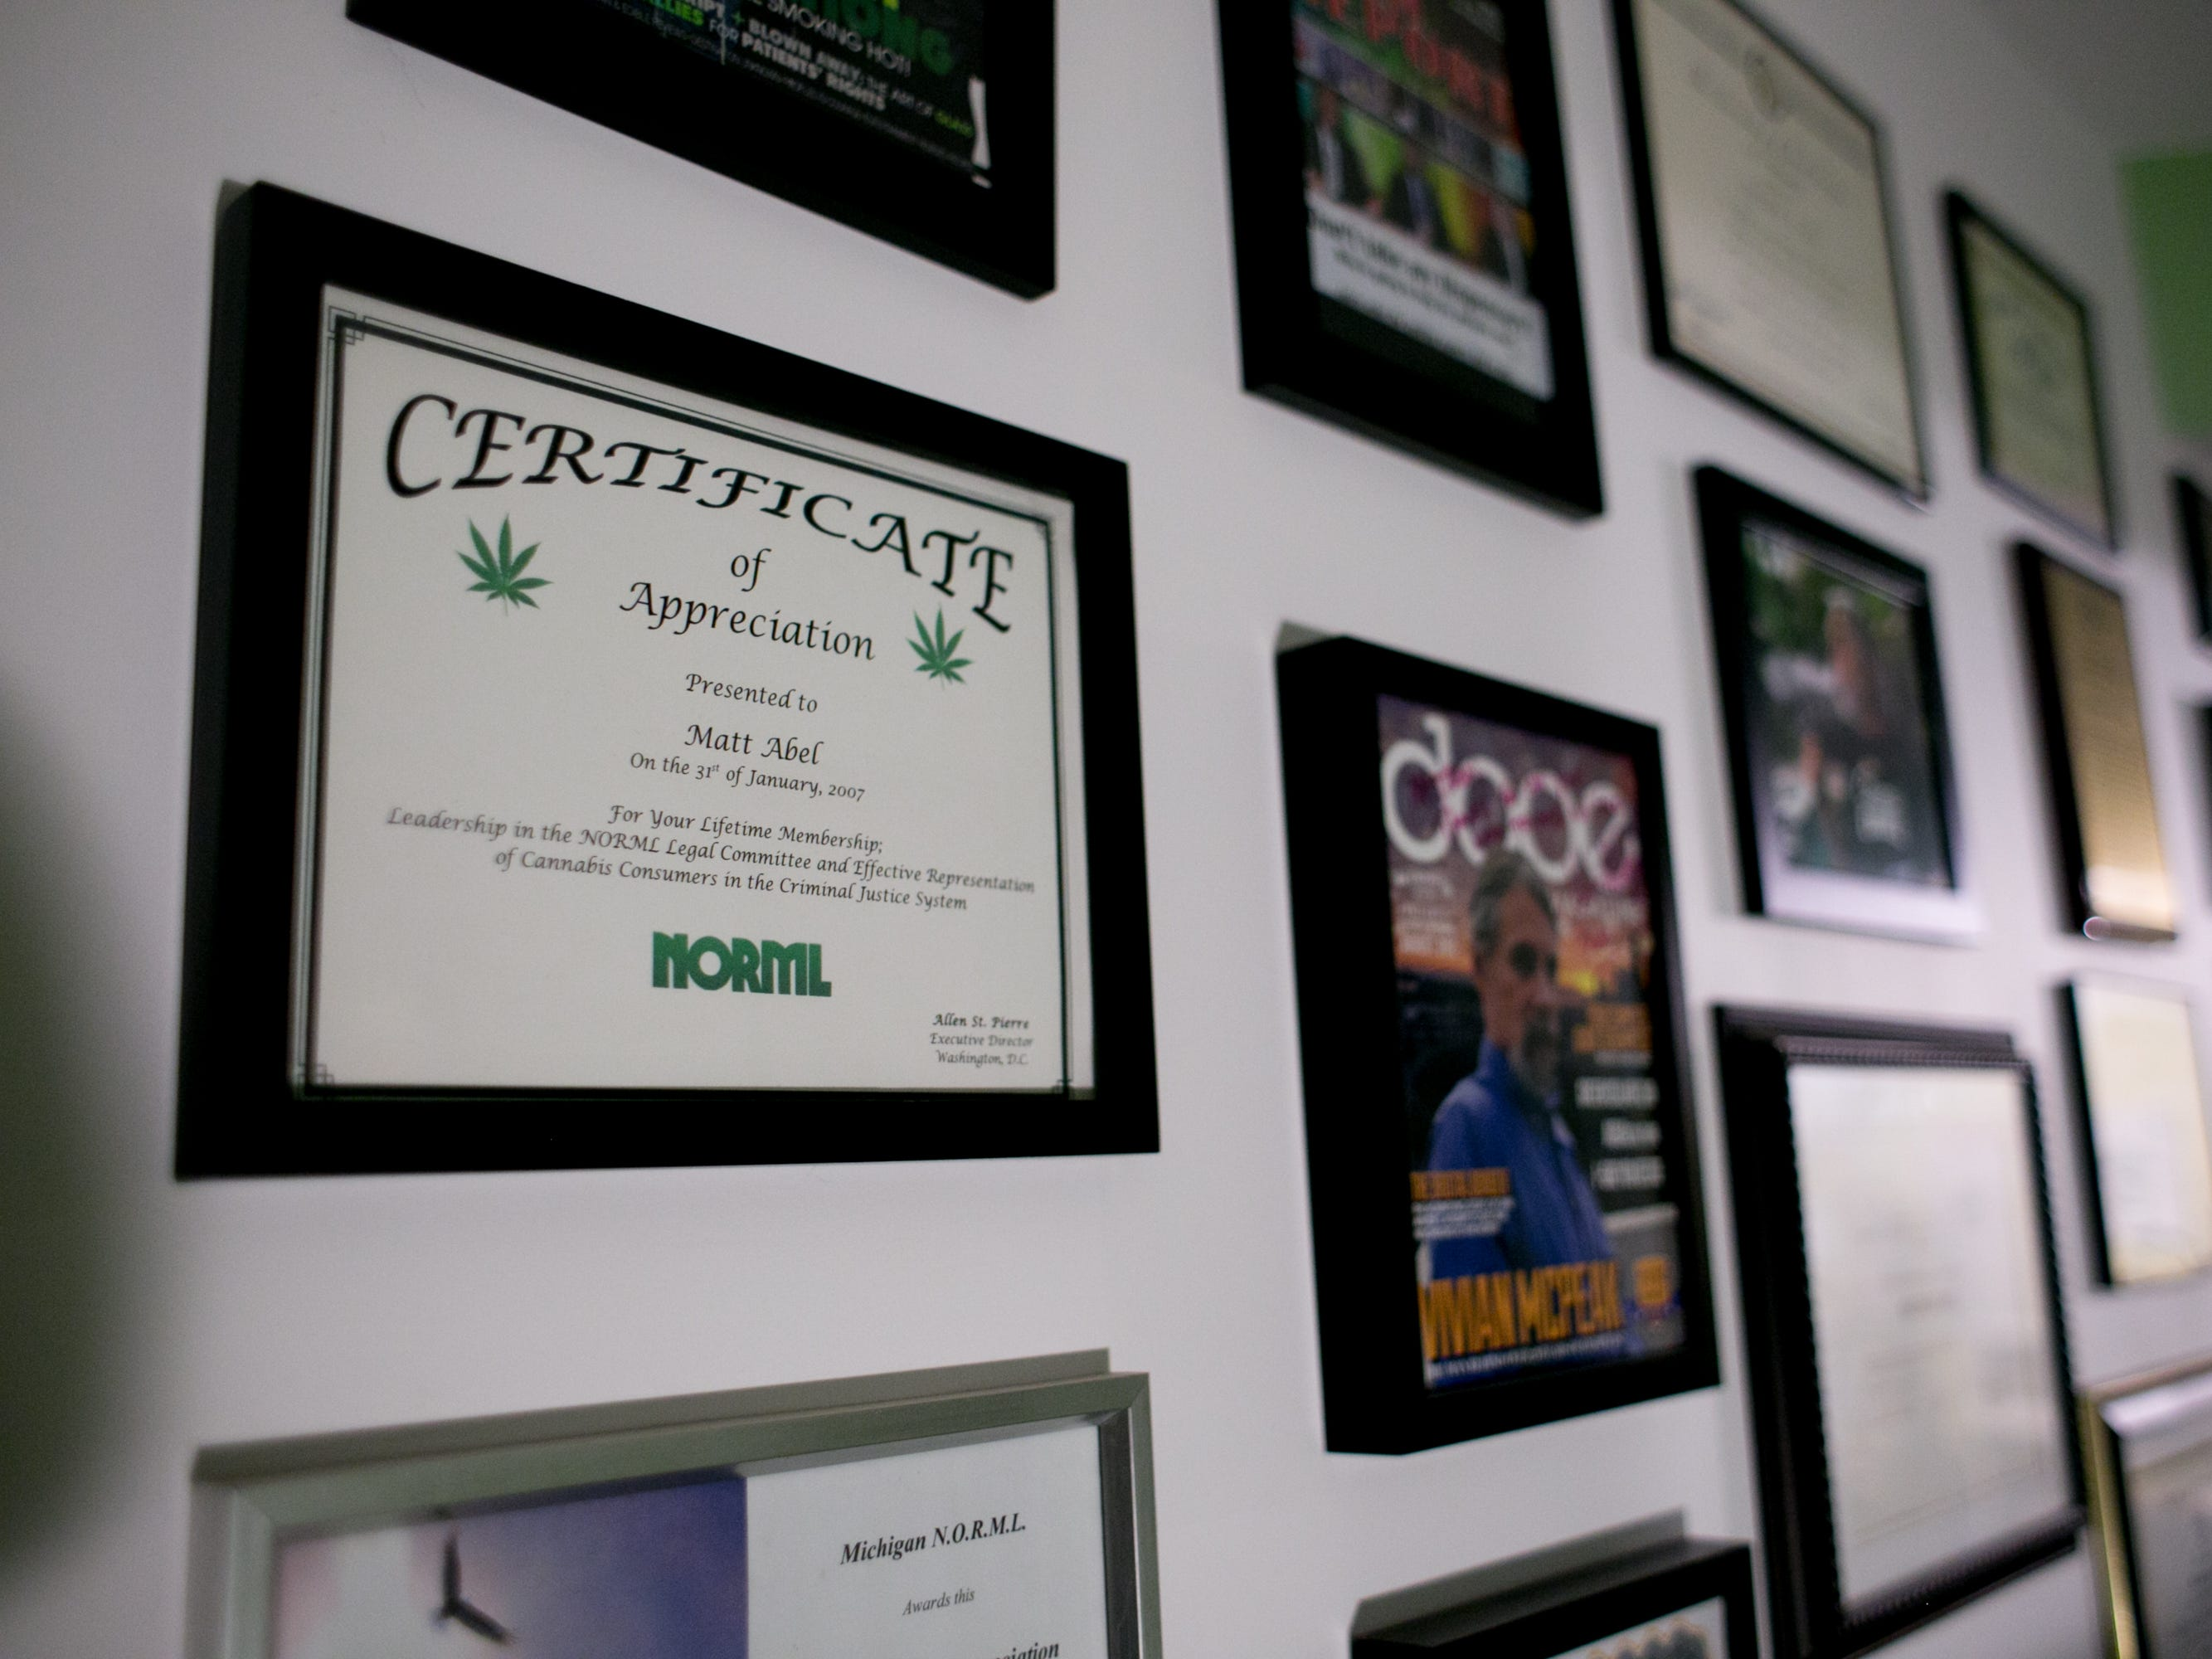 Accolades are displayed on the wall at a party celebrating the first day of legal recreational marijuana use, at the Cannabis Counsel on the east side of Detroit.